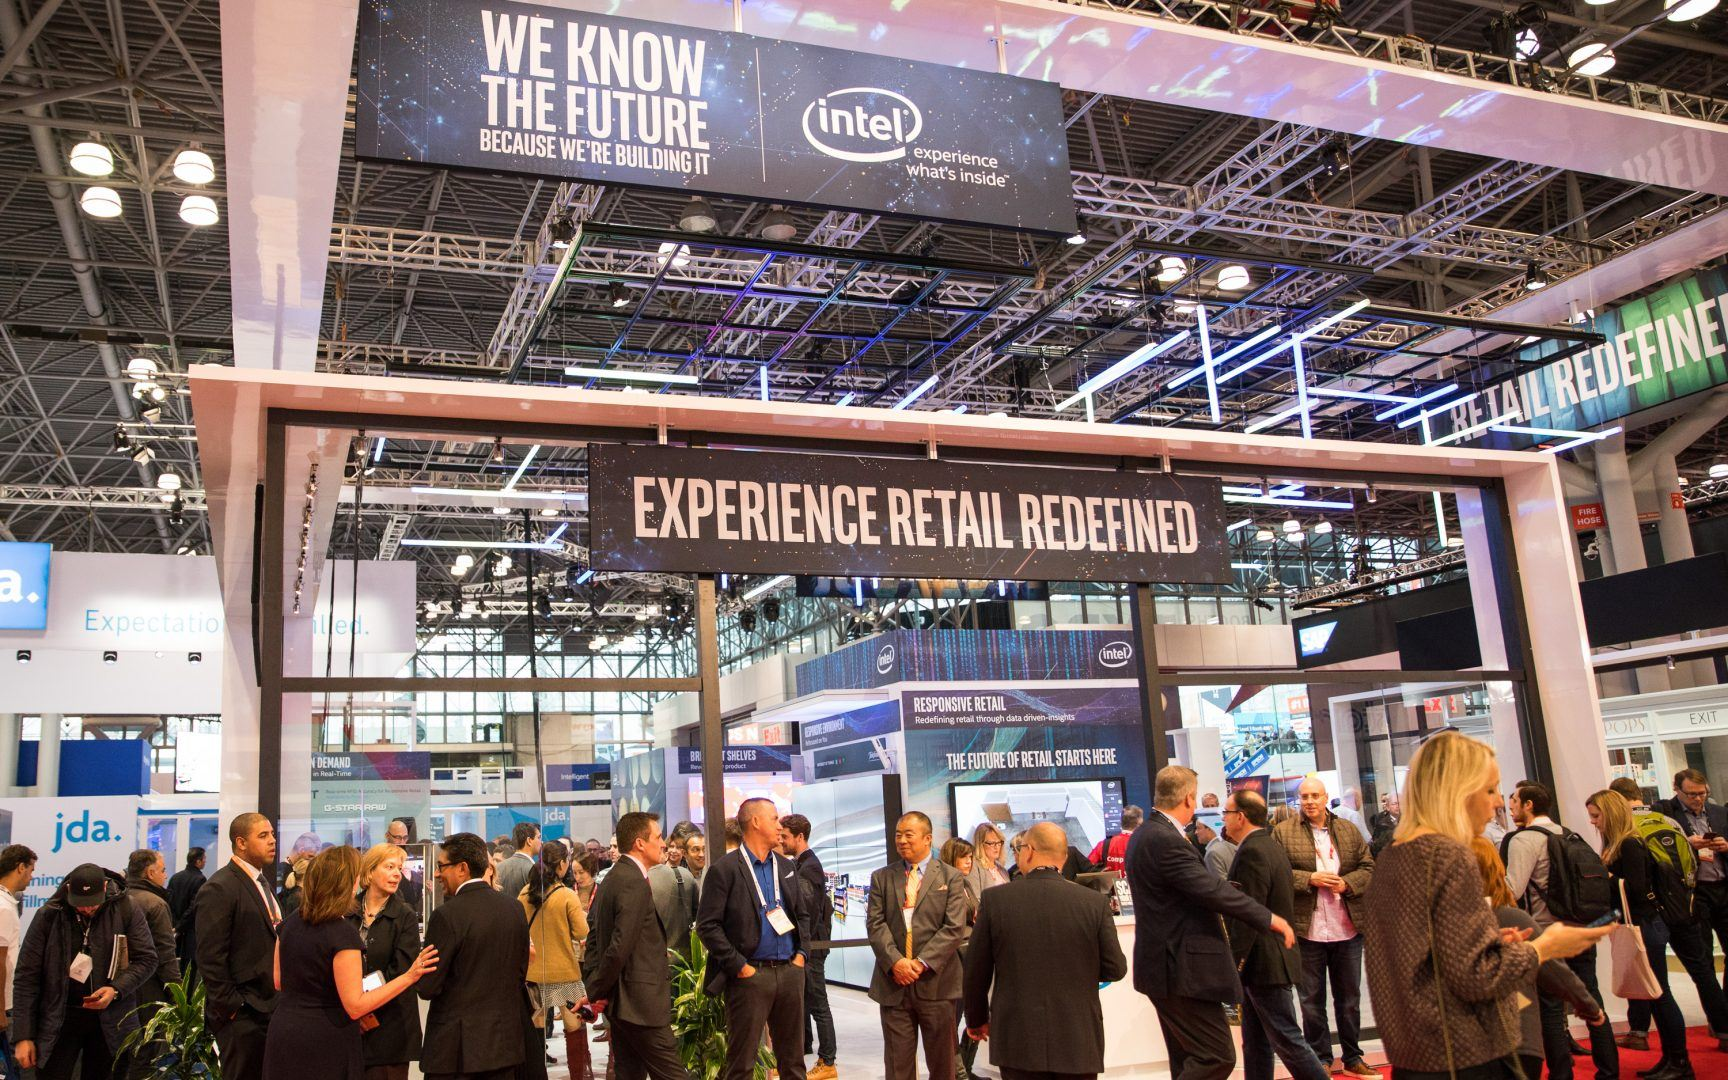 Retail technology was on display at Intel's NRF 2018 booth.